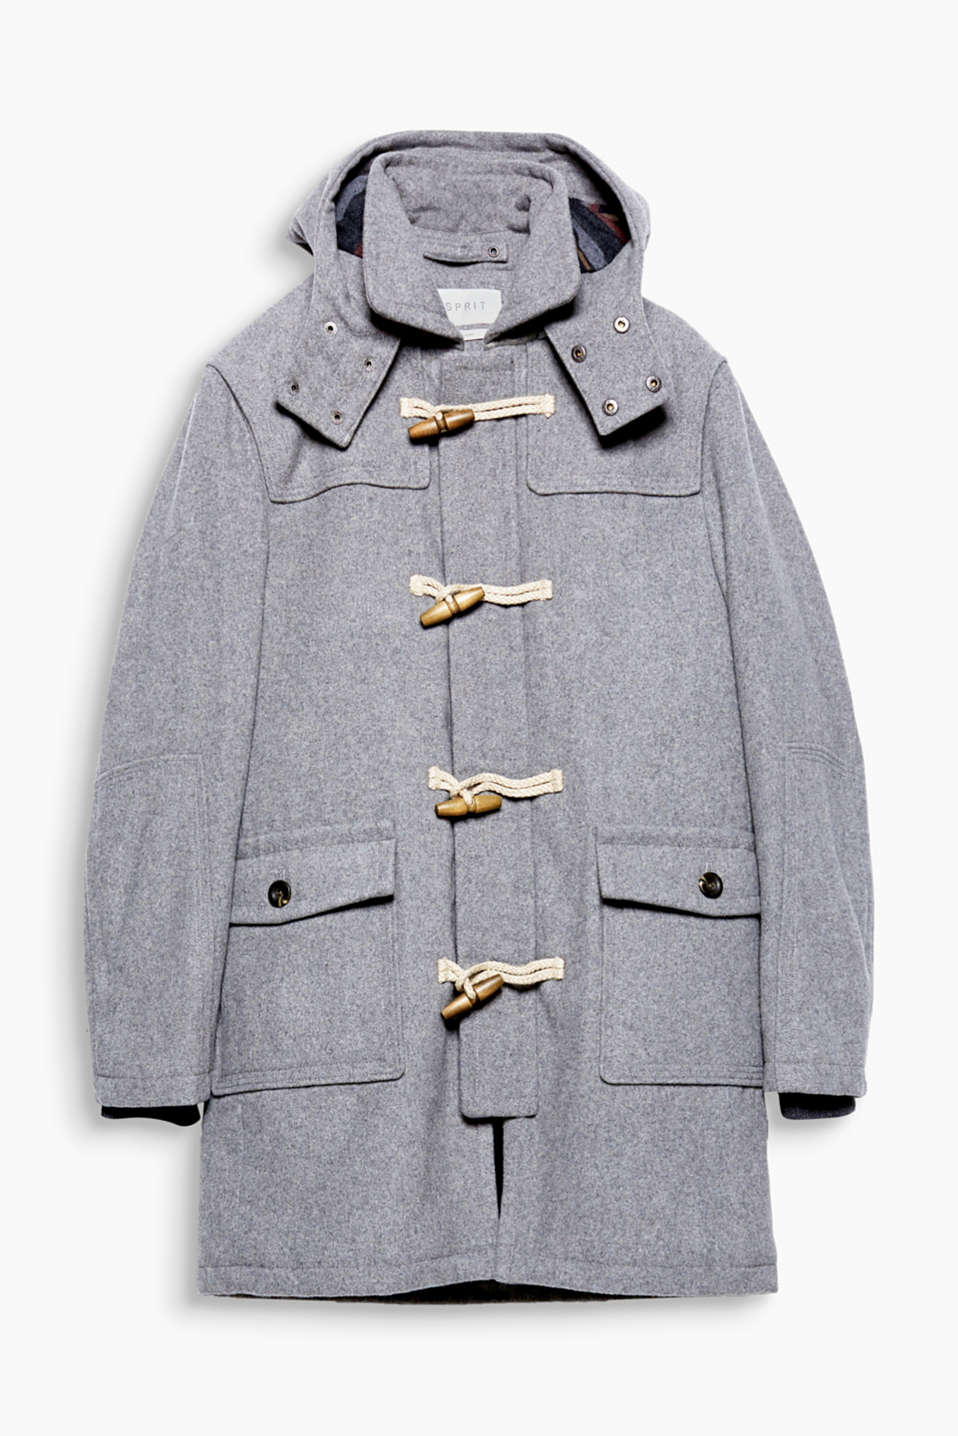 A classic! Go through the winter in sporty style thanks to this duffel coat.